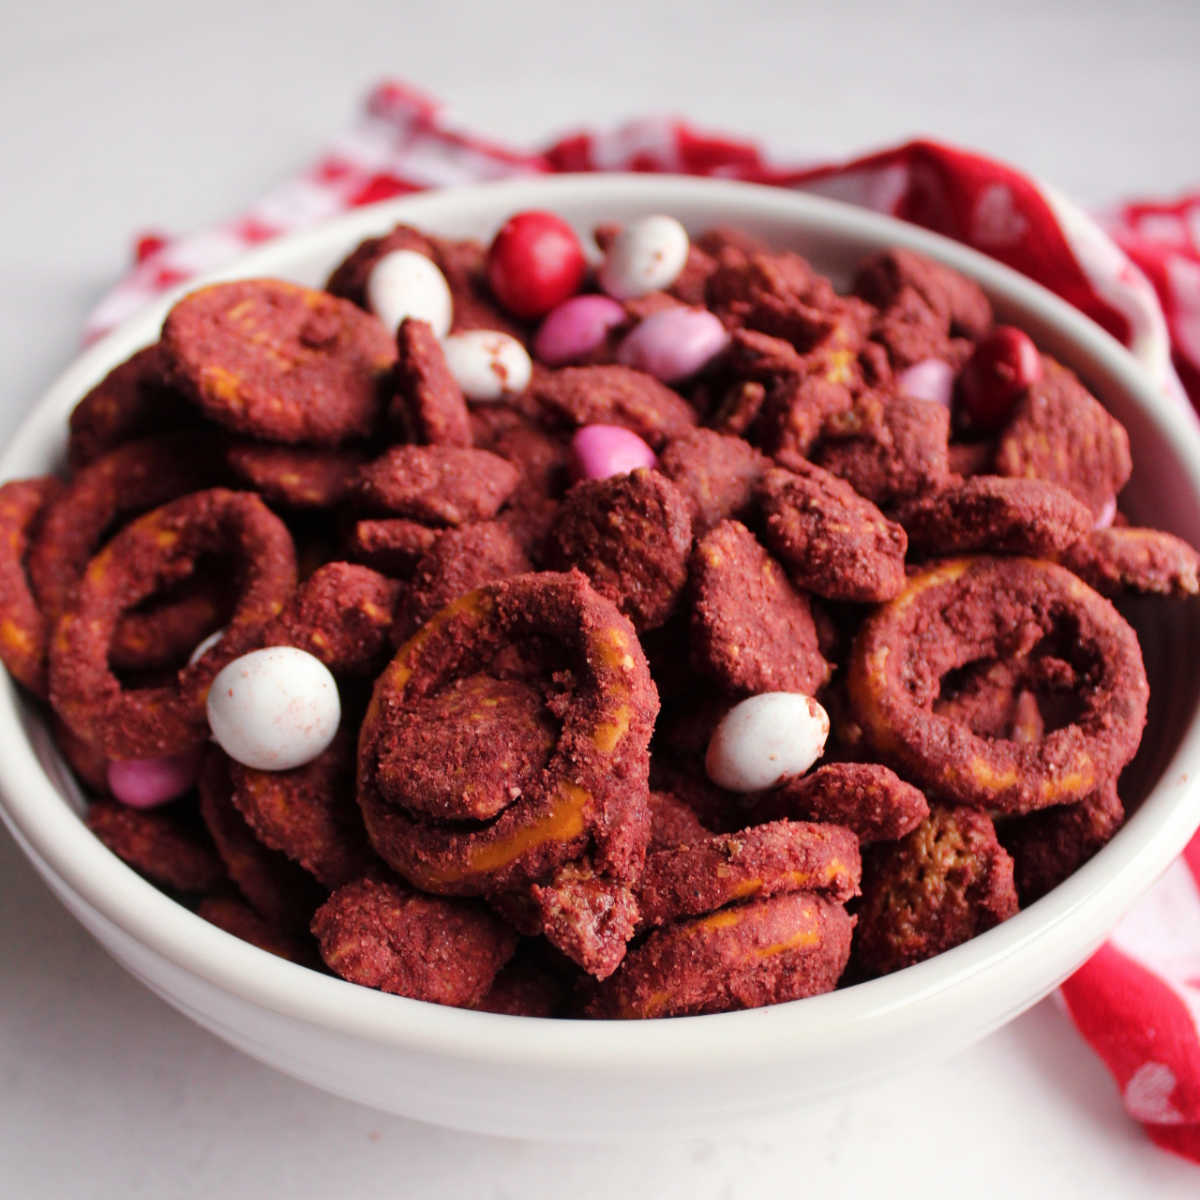 bowl of red velvet muddy buddies with pretzels and candies